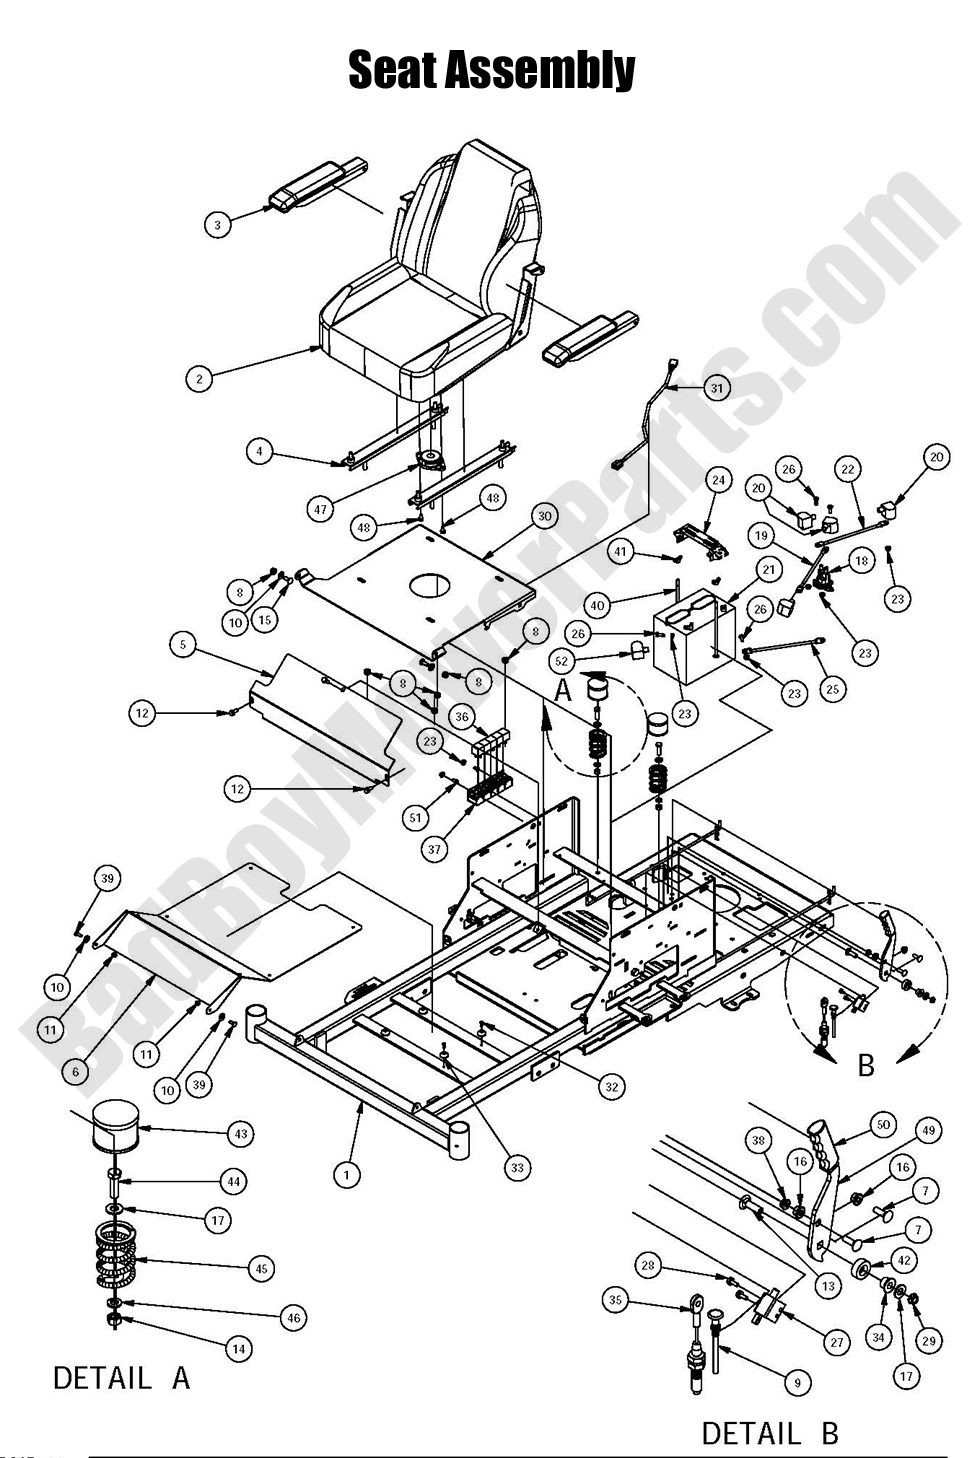 Seat Assembly bad boy mower parts 2016 zt elite seat assembly diagram  at mifinder.co